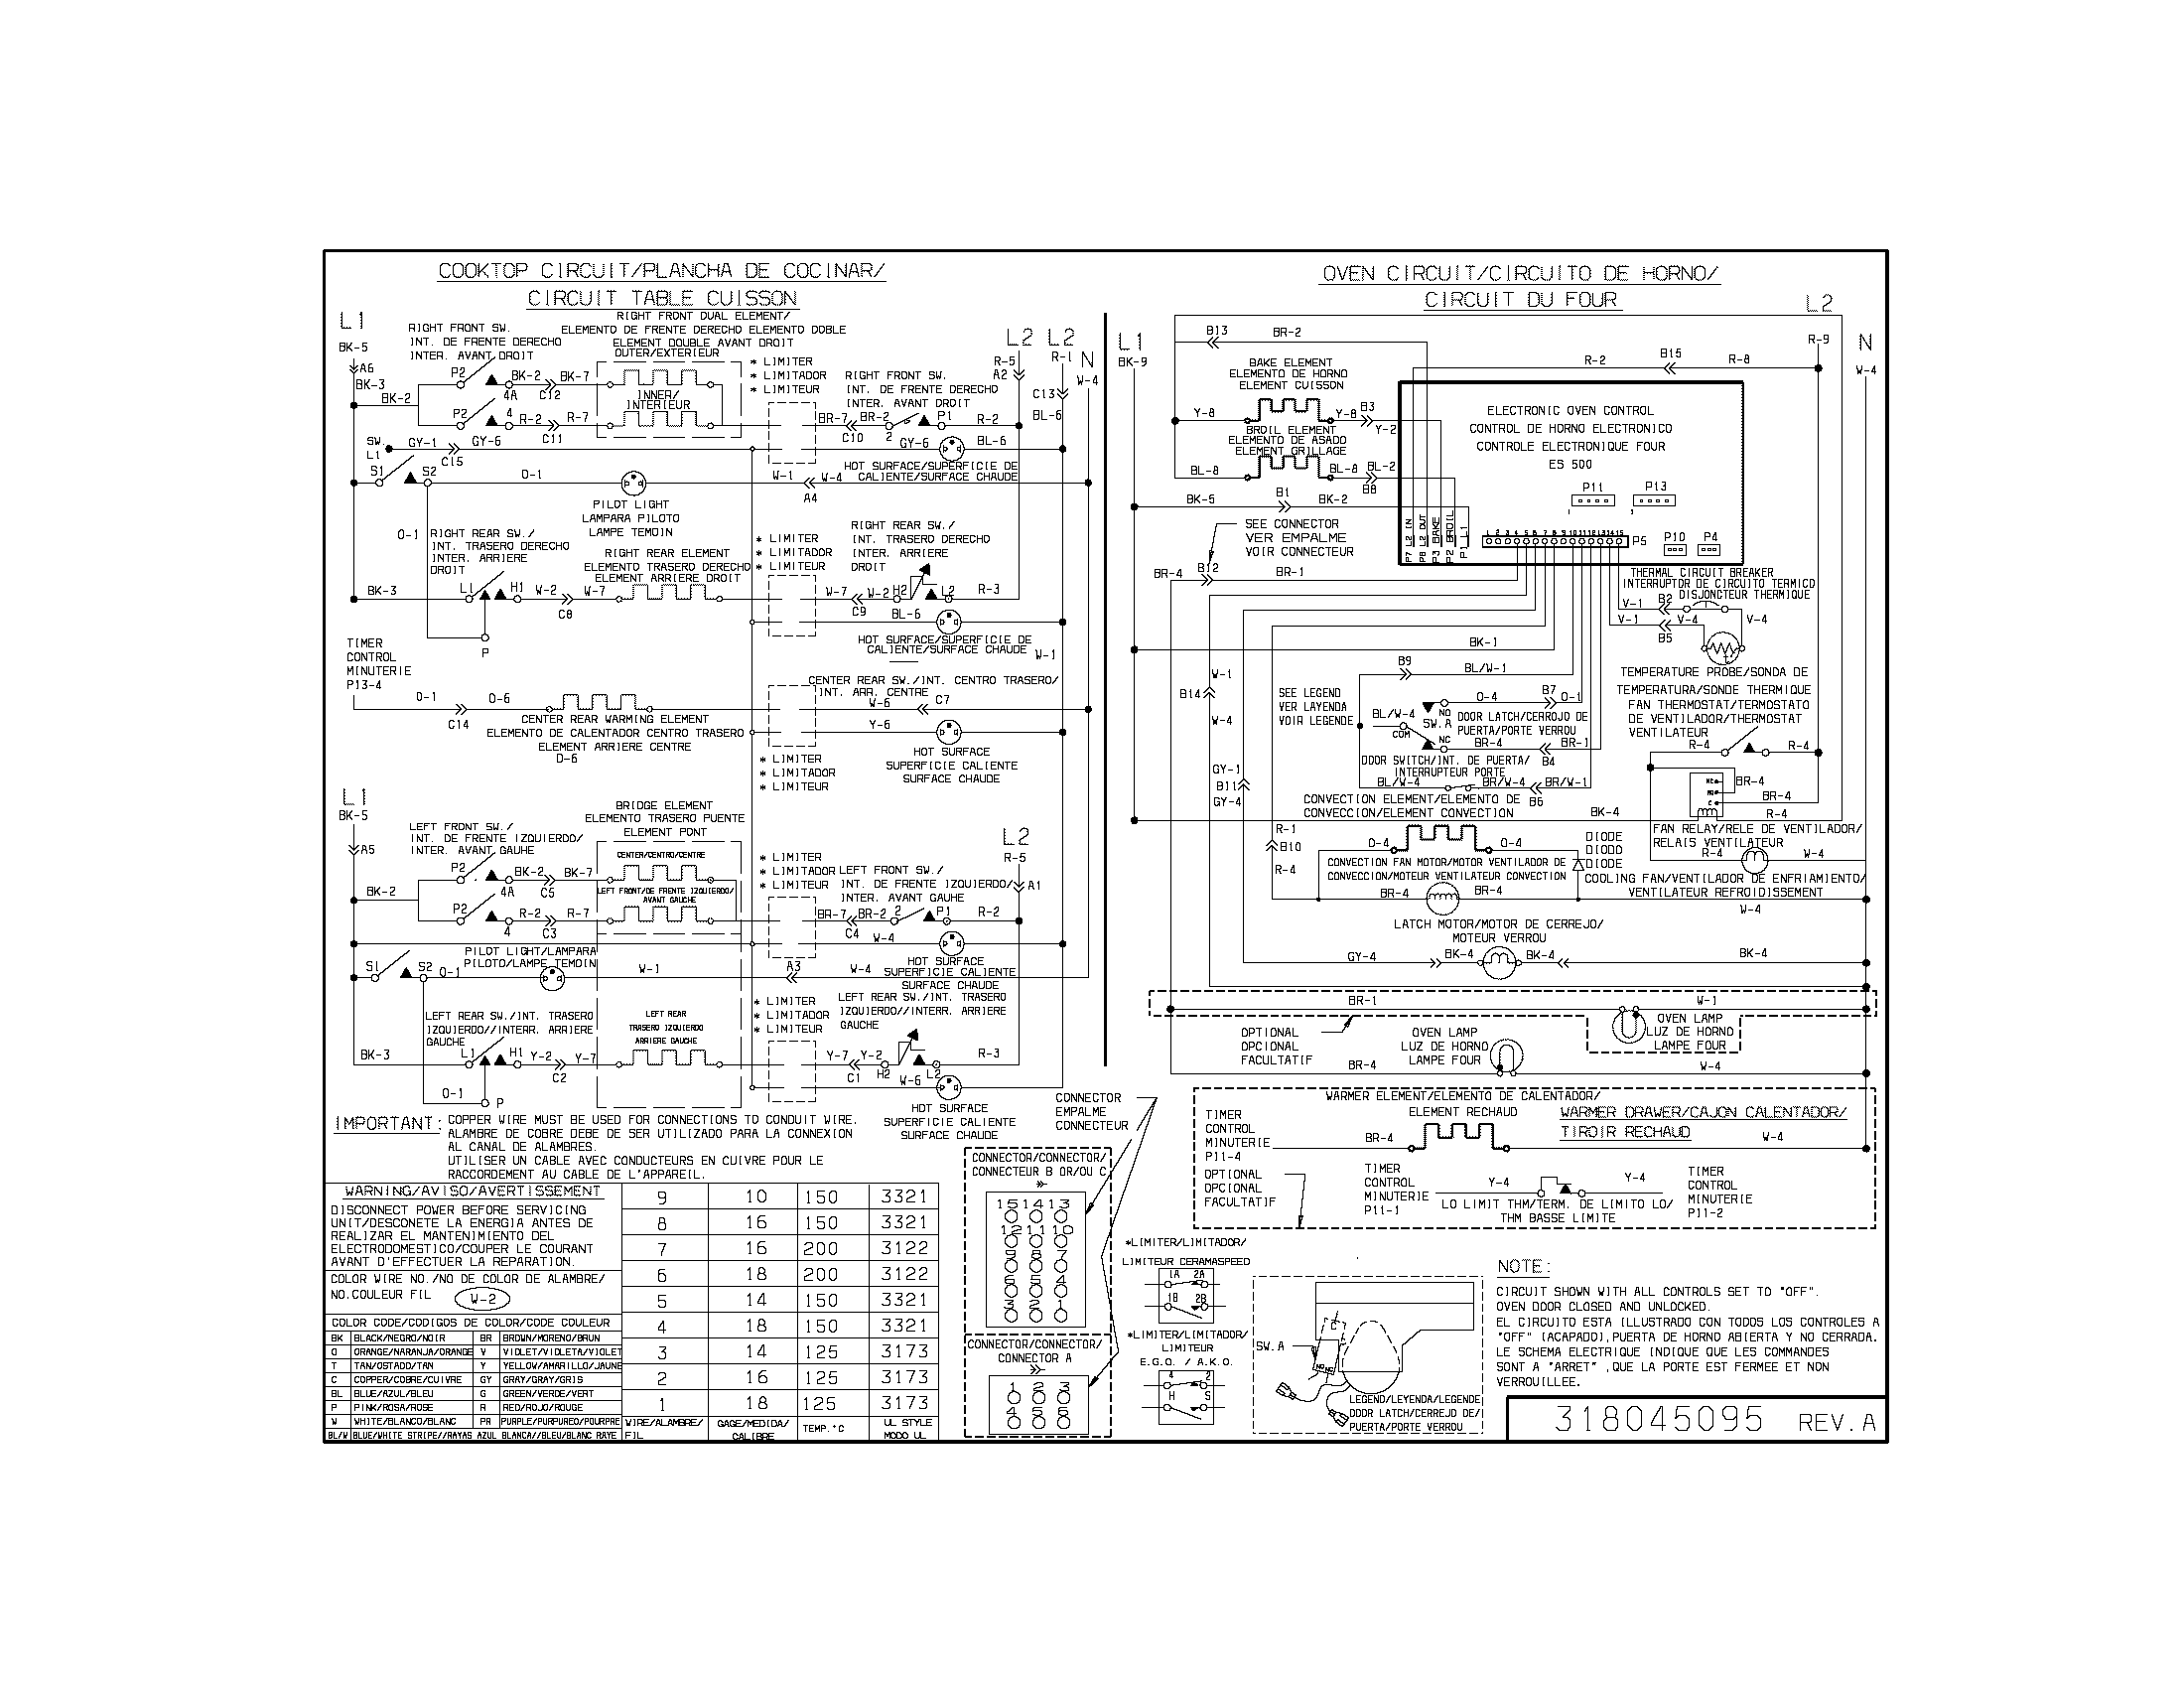 wiring diagram parts frigidaire cpes389cc1 range timer stove clocks and appliance timers electrolux wiring diagram at readyjetset.co